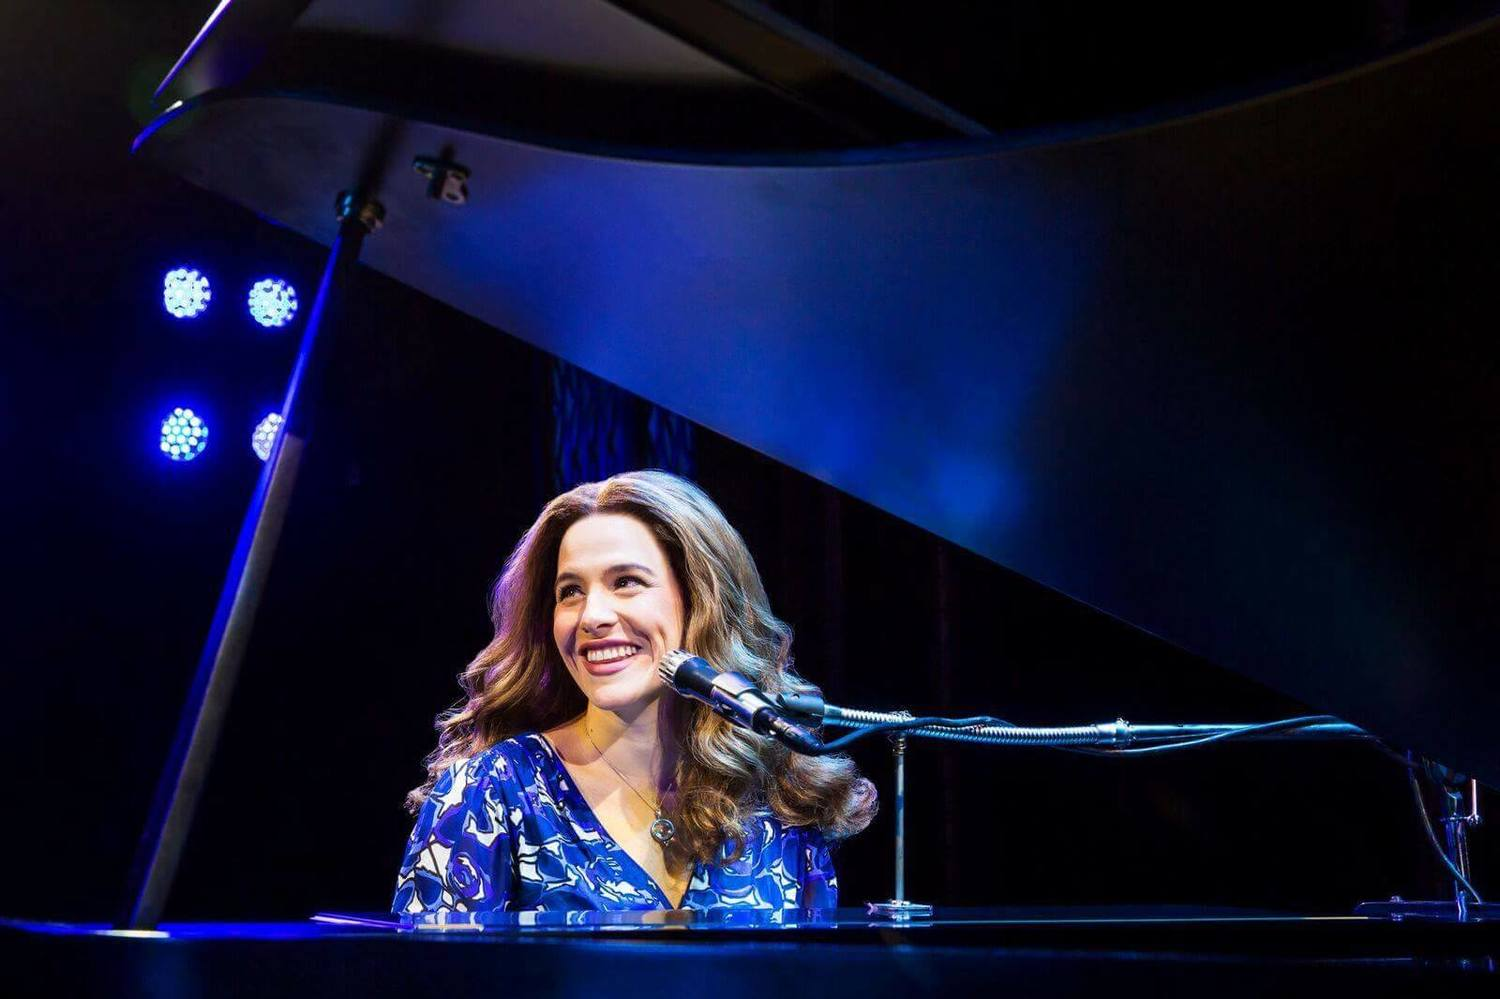 BWW Review: BEAUTIFUL: THE CAROLE KING MUSICAL at Providence Performing Arts Center